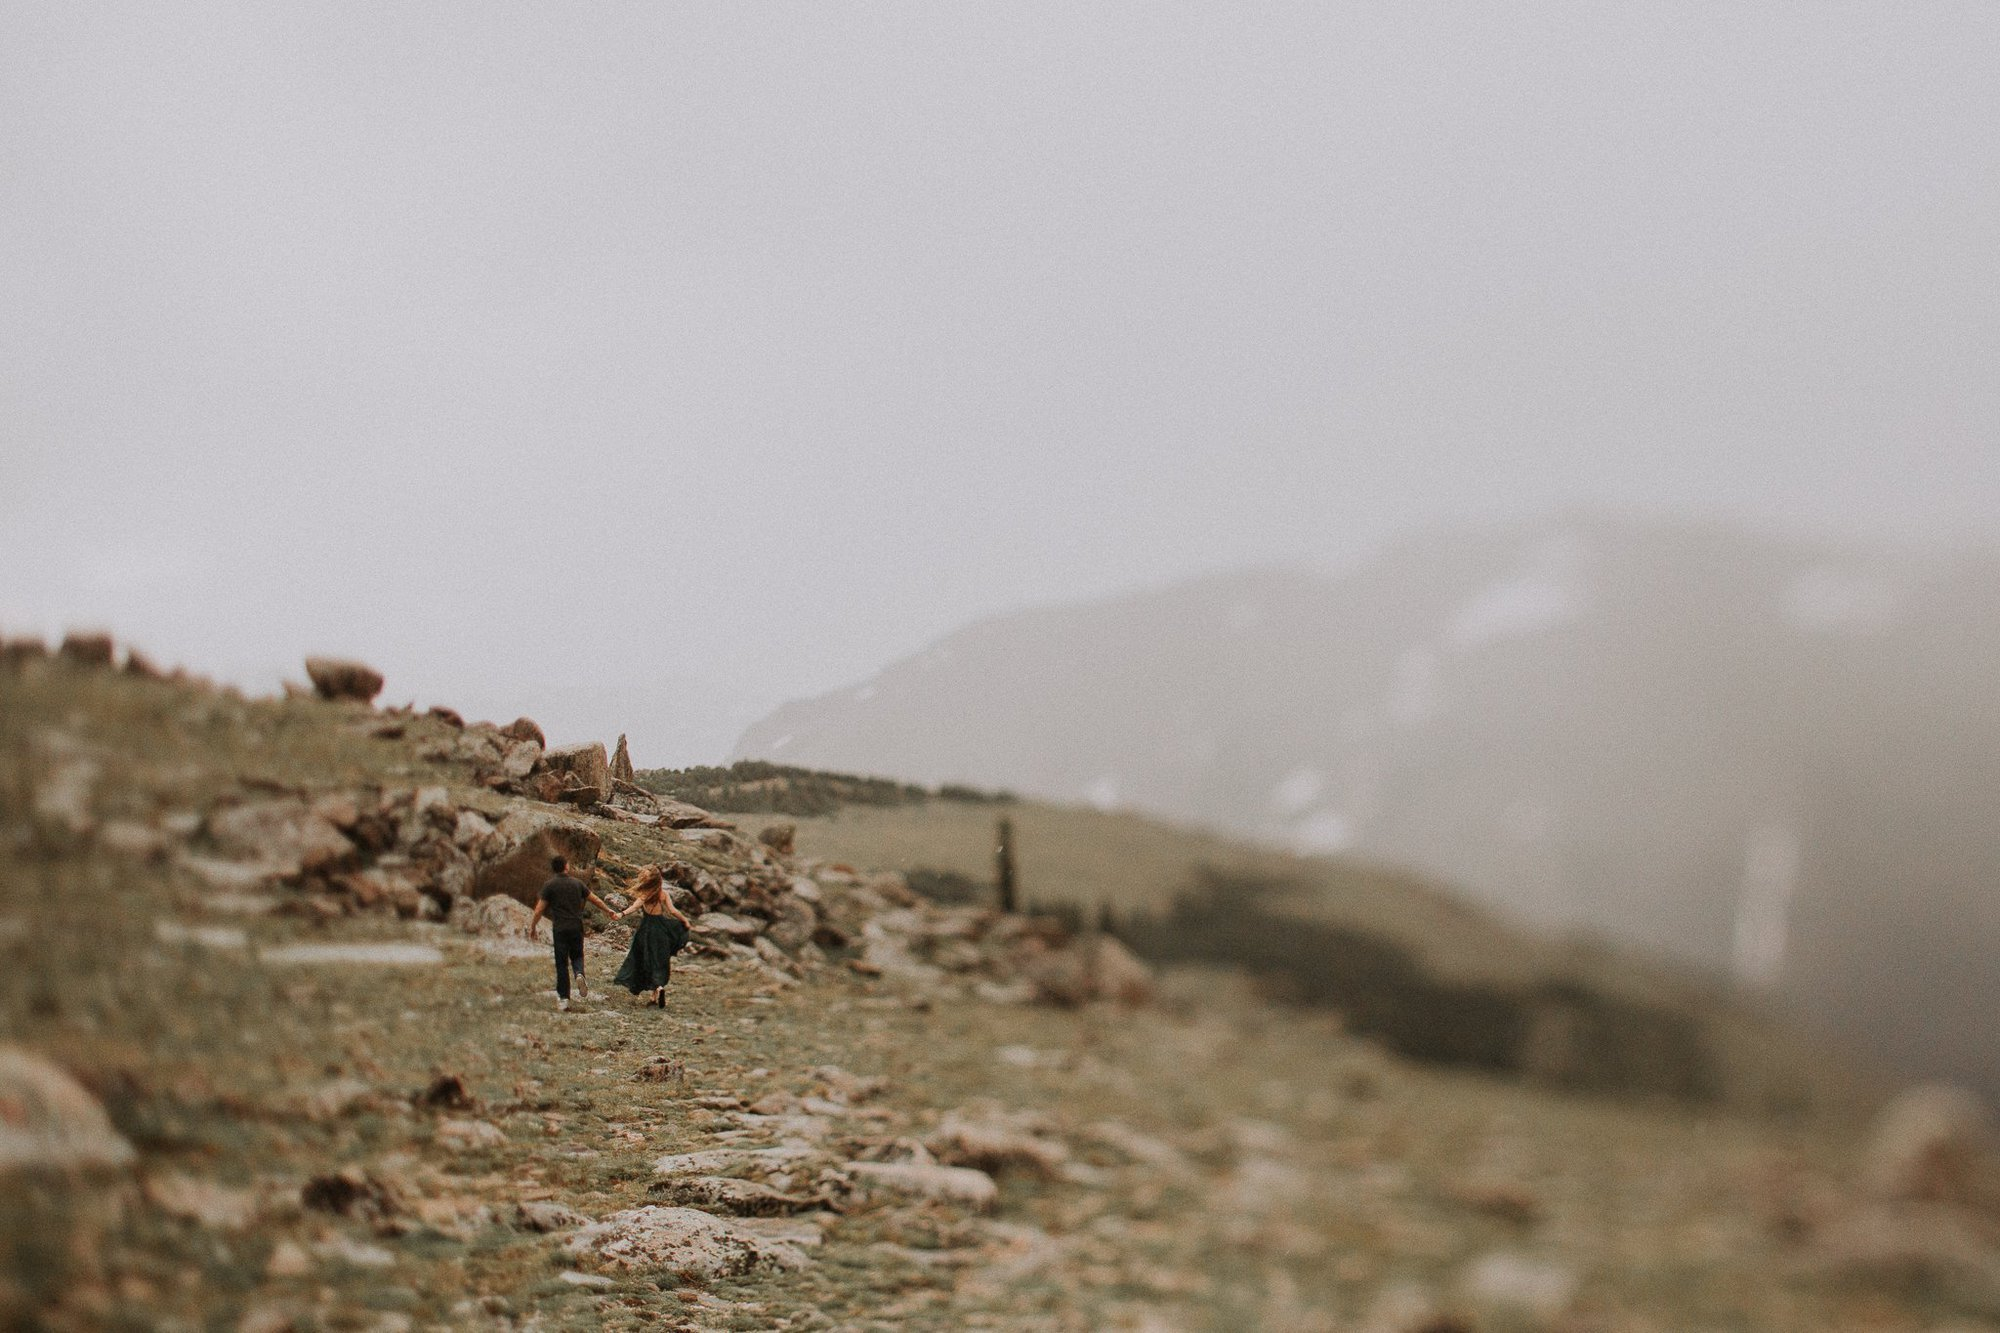 ROCKY MOUNTAIN NATIONAL PARK ENGAGEMENT | ESTES PARK ENGAGEMENT PHOTOGRAPHY | TRAIL RIDGE ROAD ENGAGEMENT | APRIL + DEREK | COLORADO MOUNTAIN ENGAGEMENT PHOTOGRAPHER